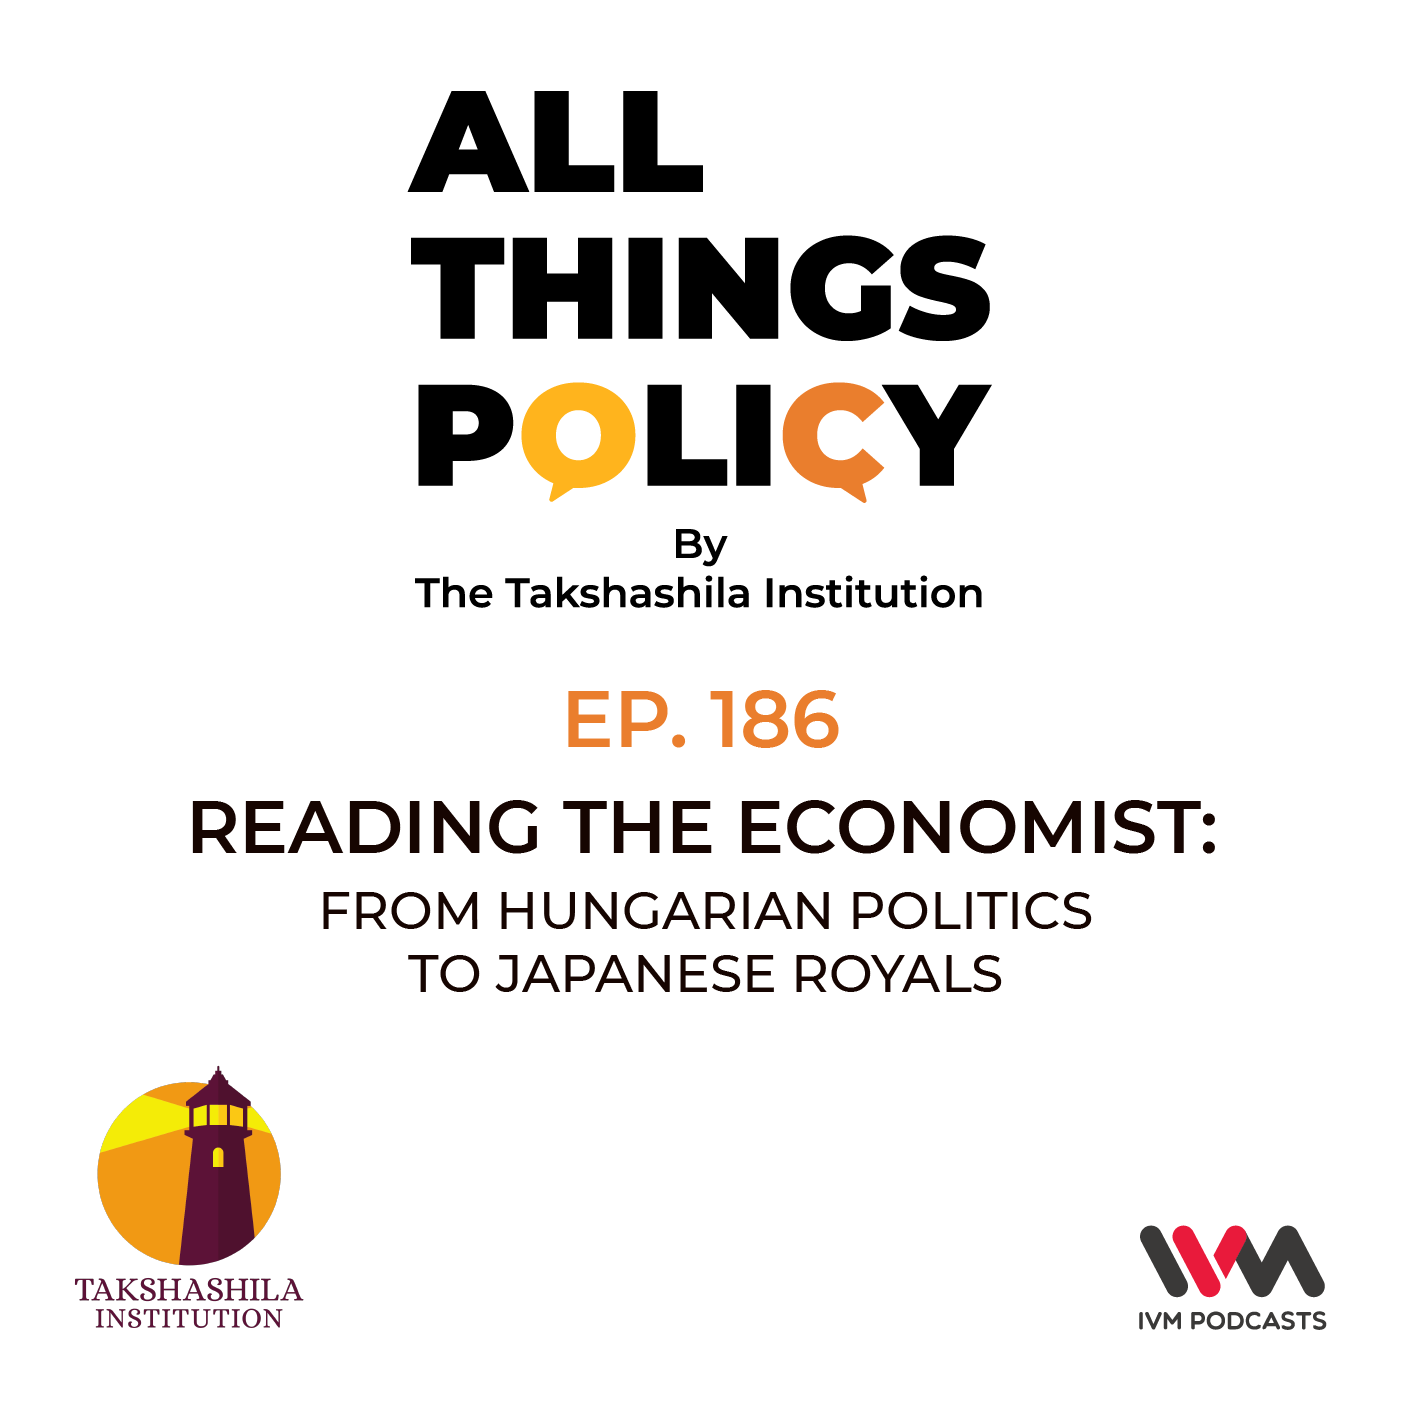 Ep. 186: Reading the Economist: From Hungarian Politics to Japanese Royals